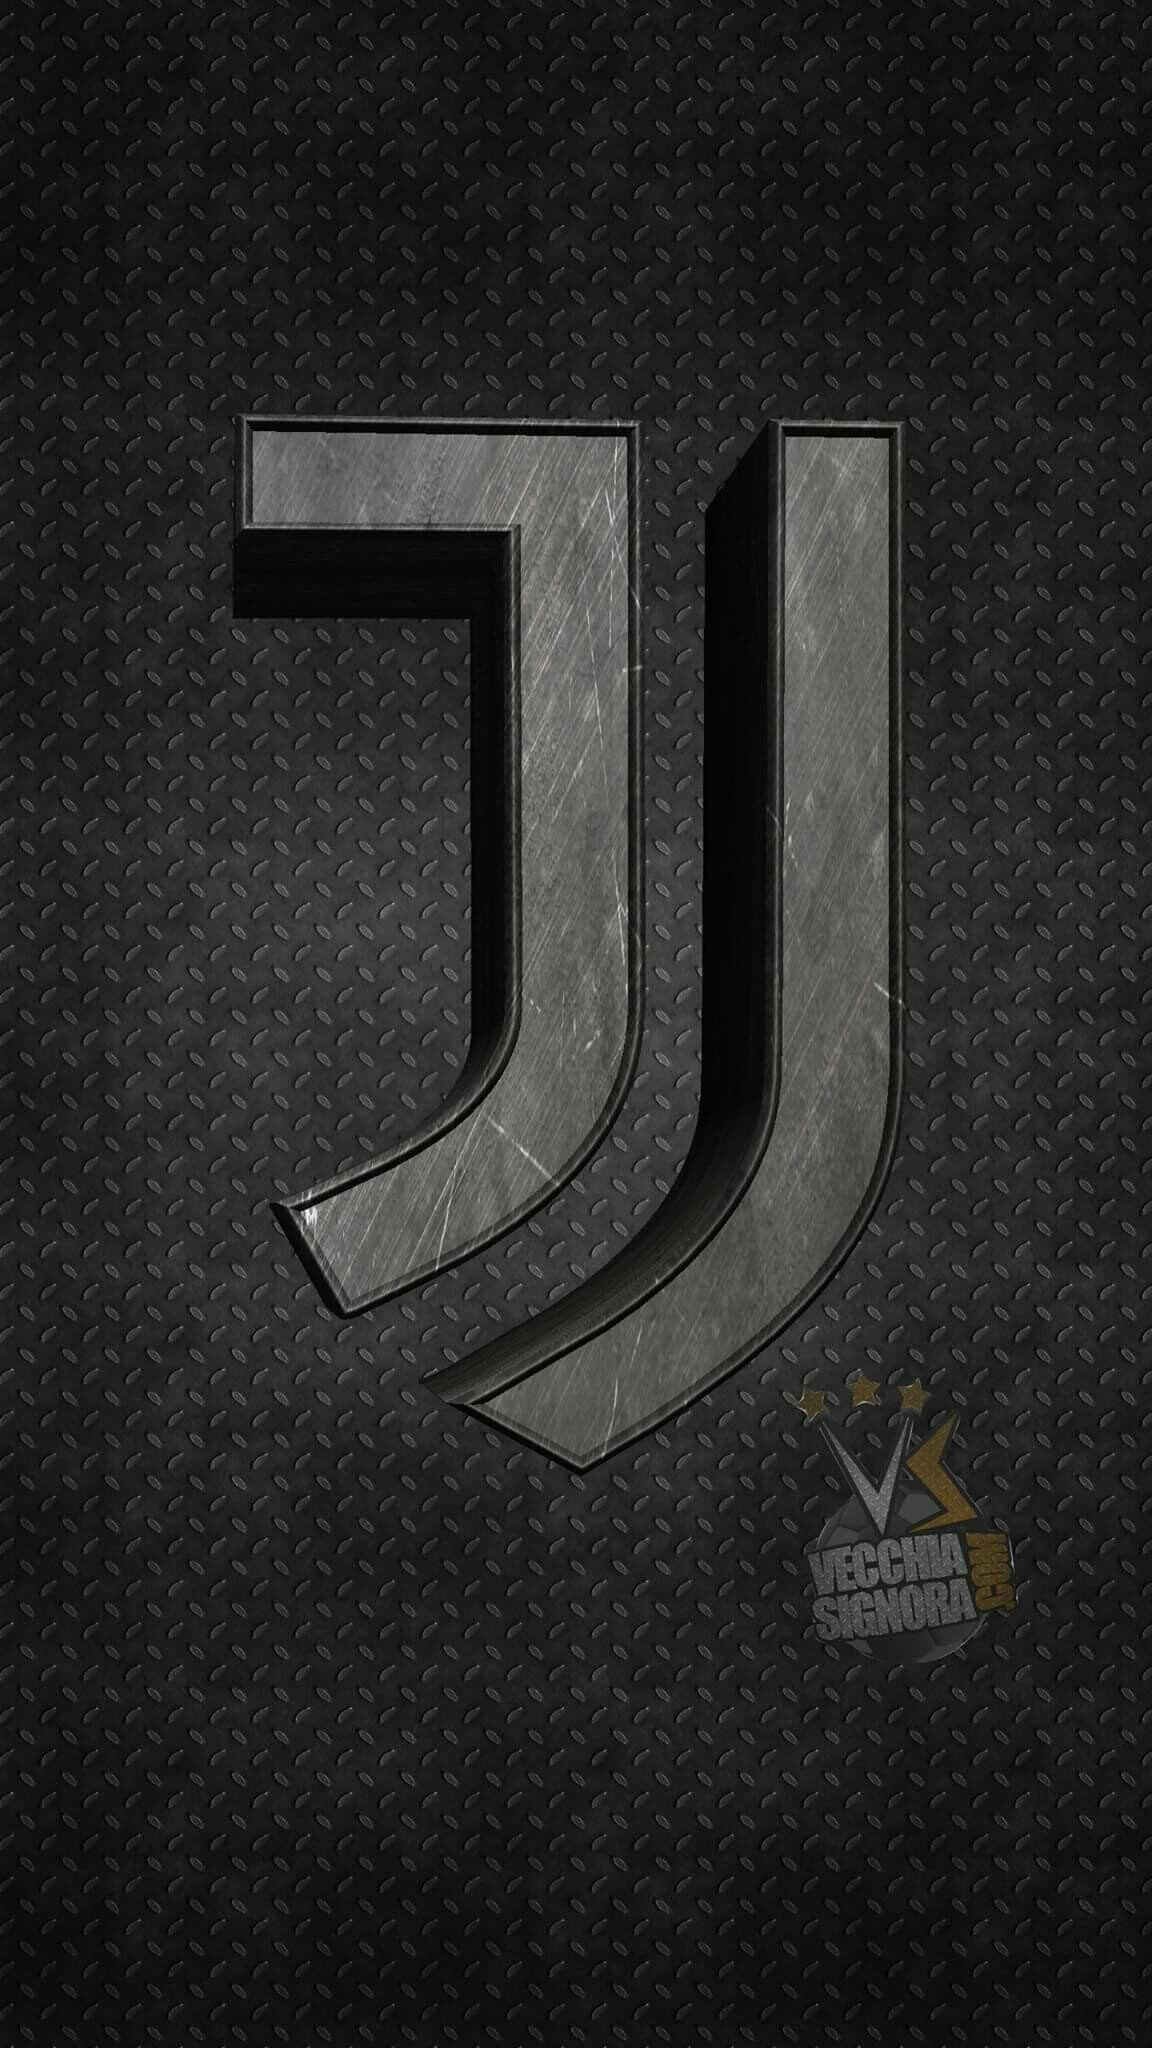 juventus background 68 pictures juventus background 68 pictures